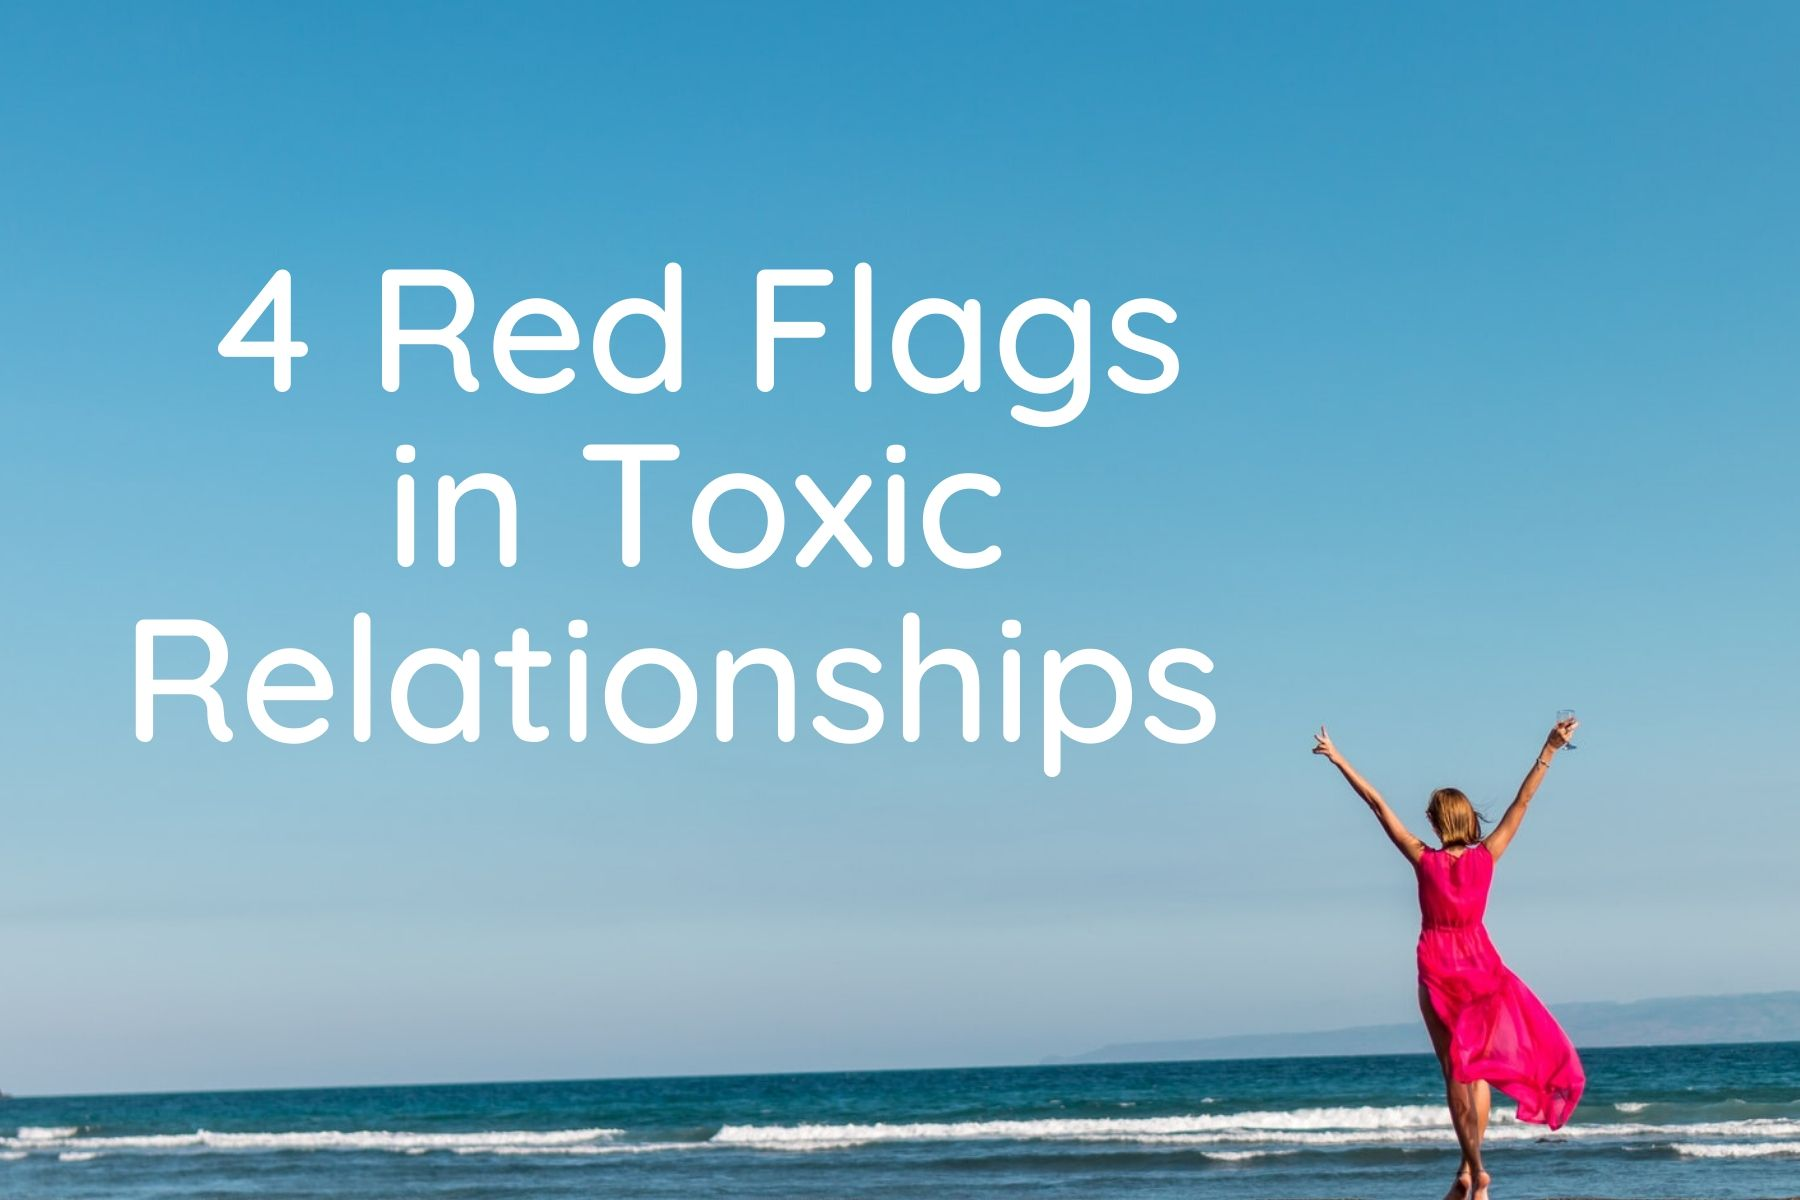 4 Red Flags in Toxic Relationships